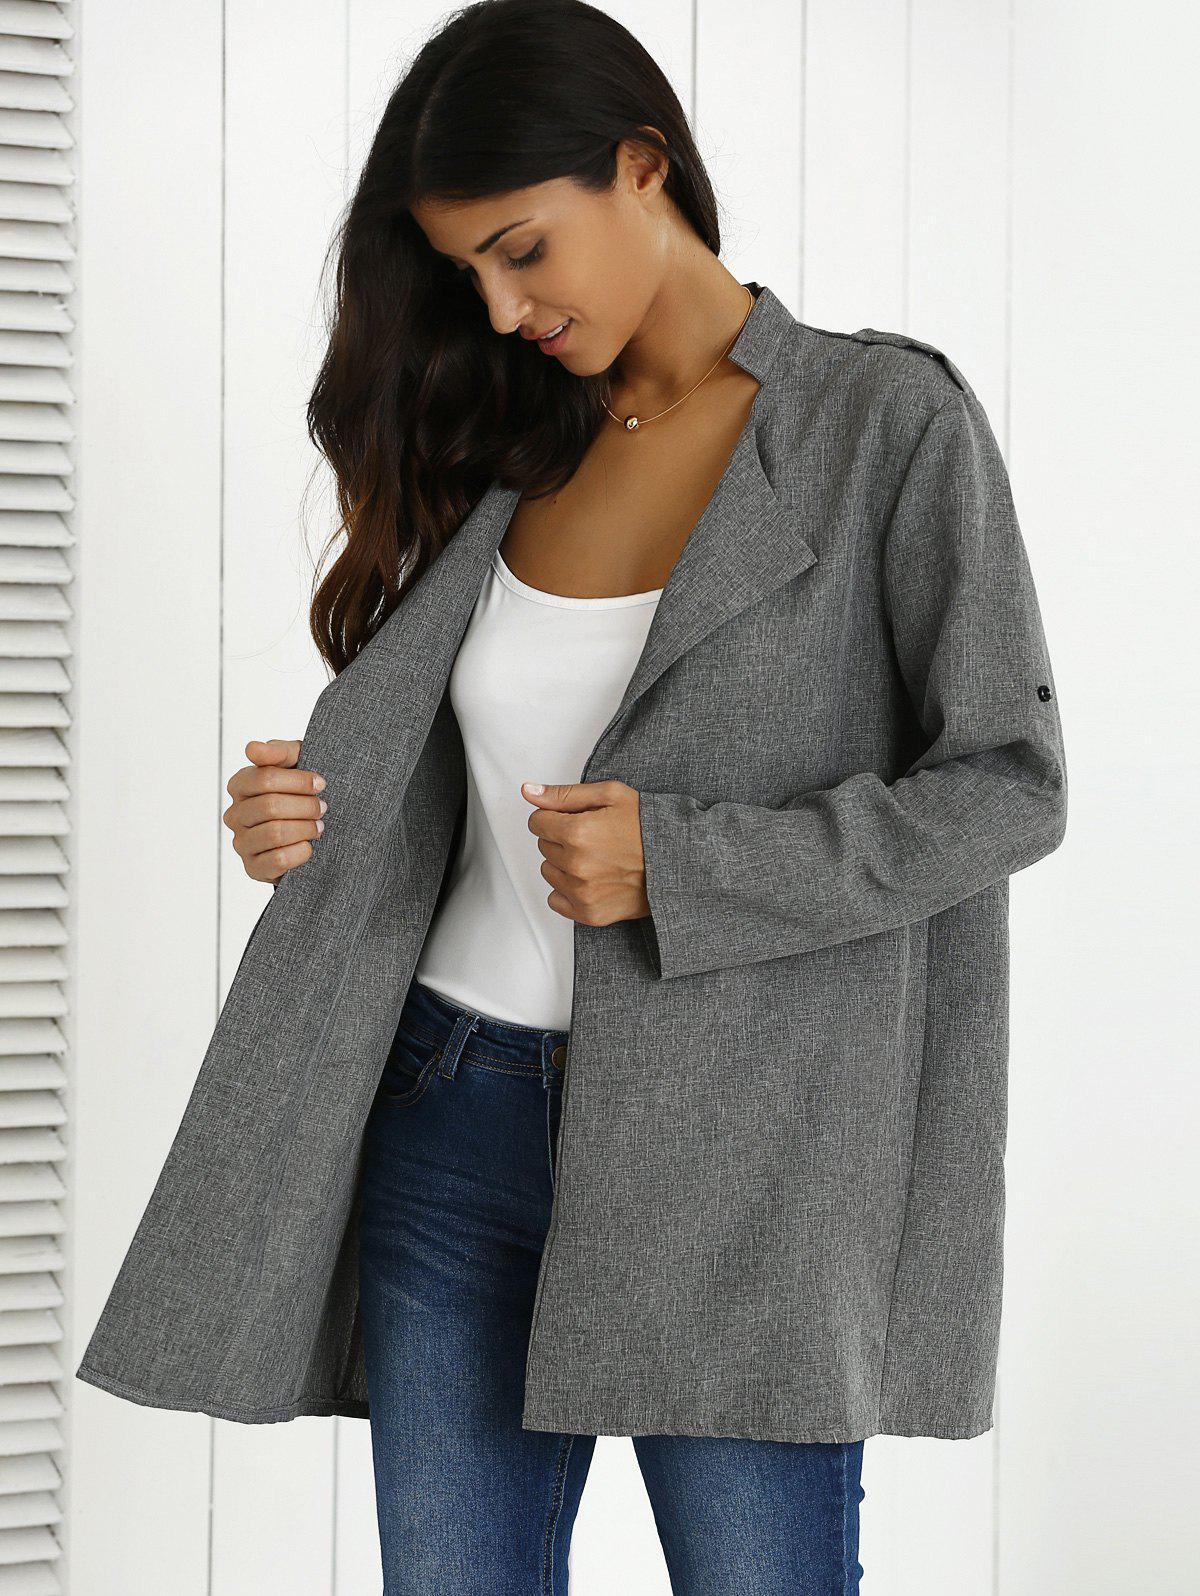 Hemming Sleeves Heather Shoulder Mark Coat - GRAY 2XL